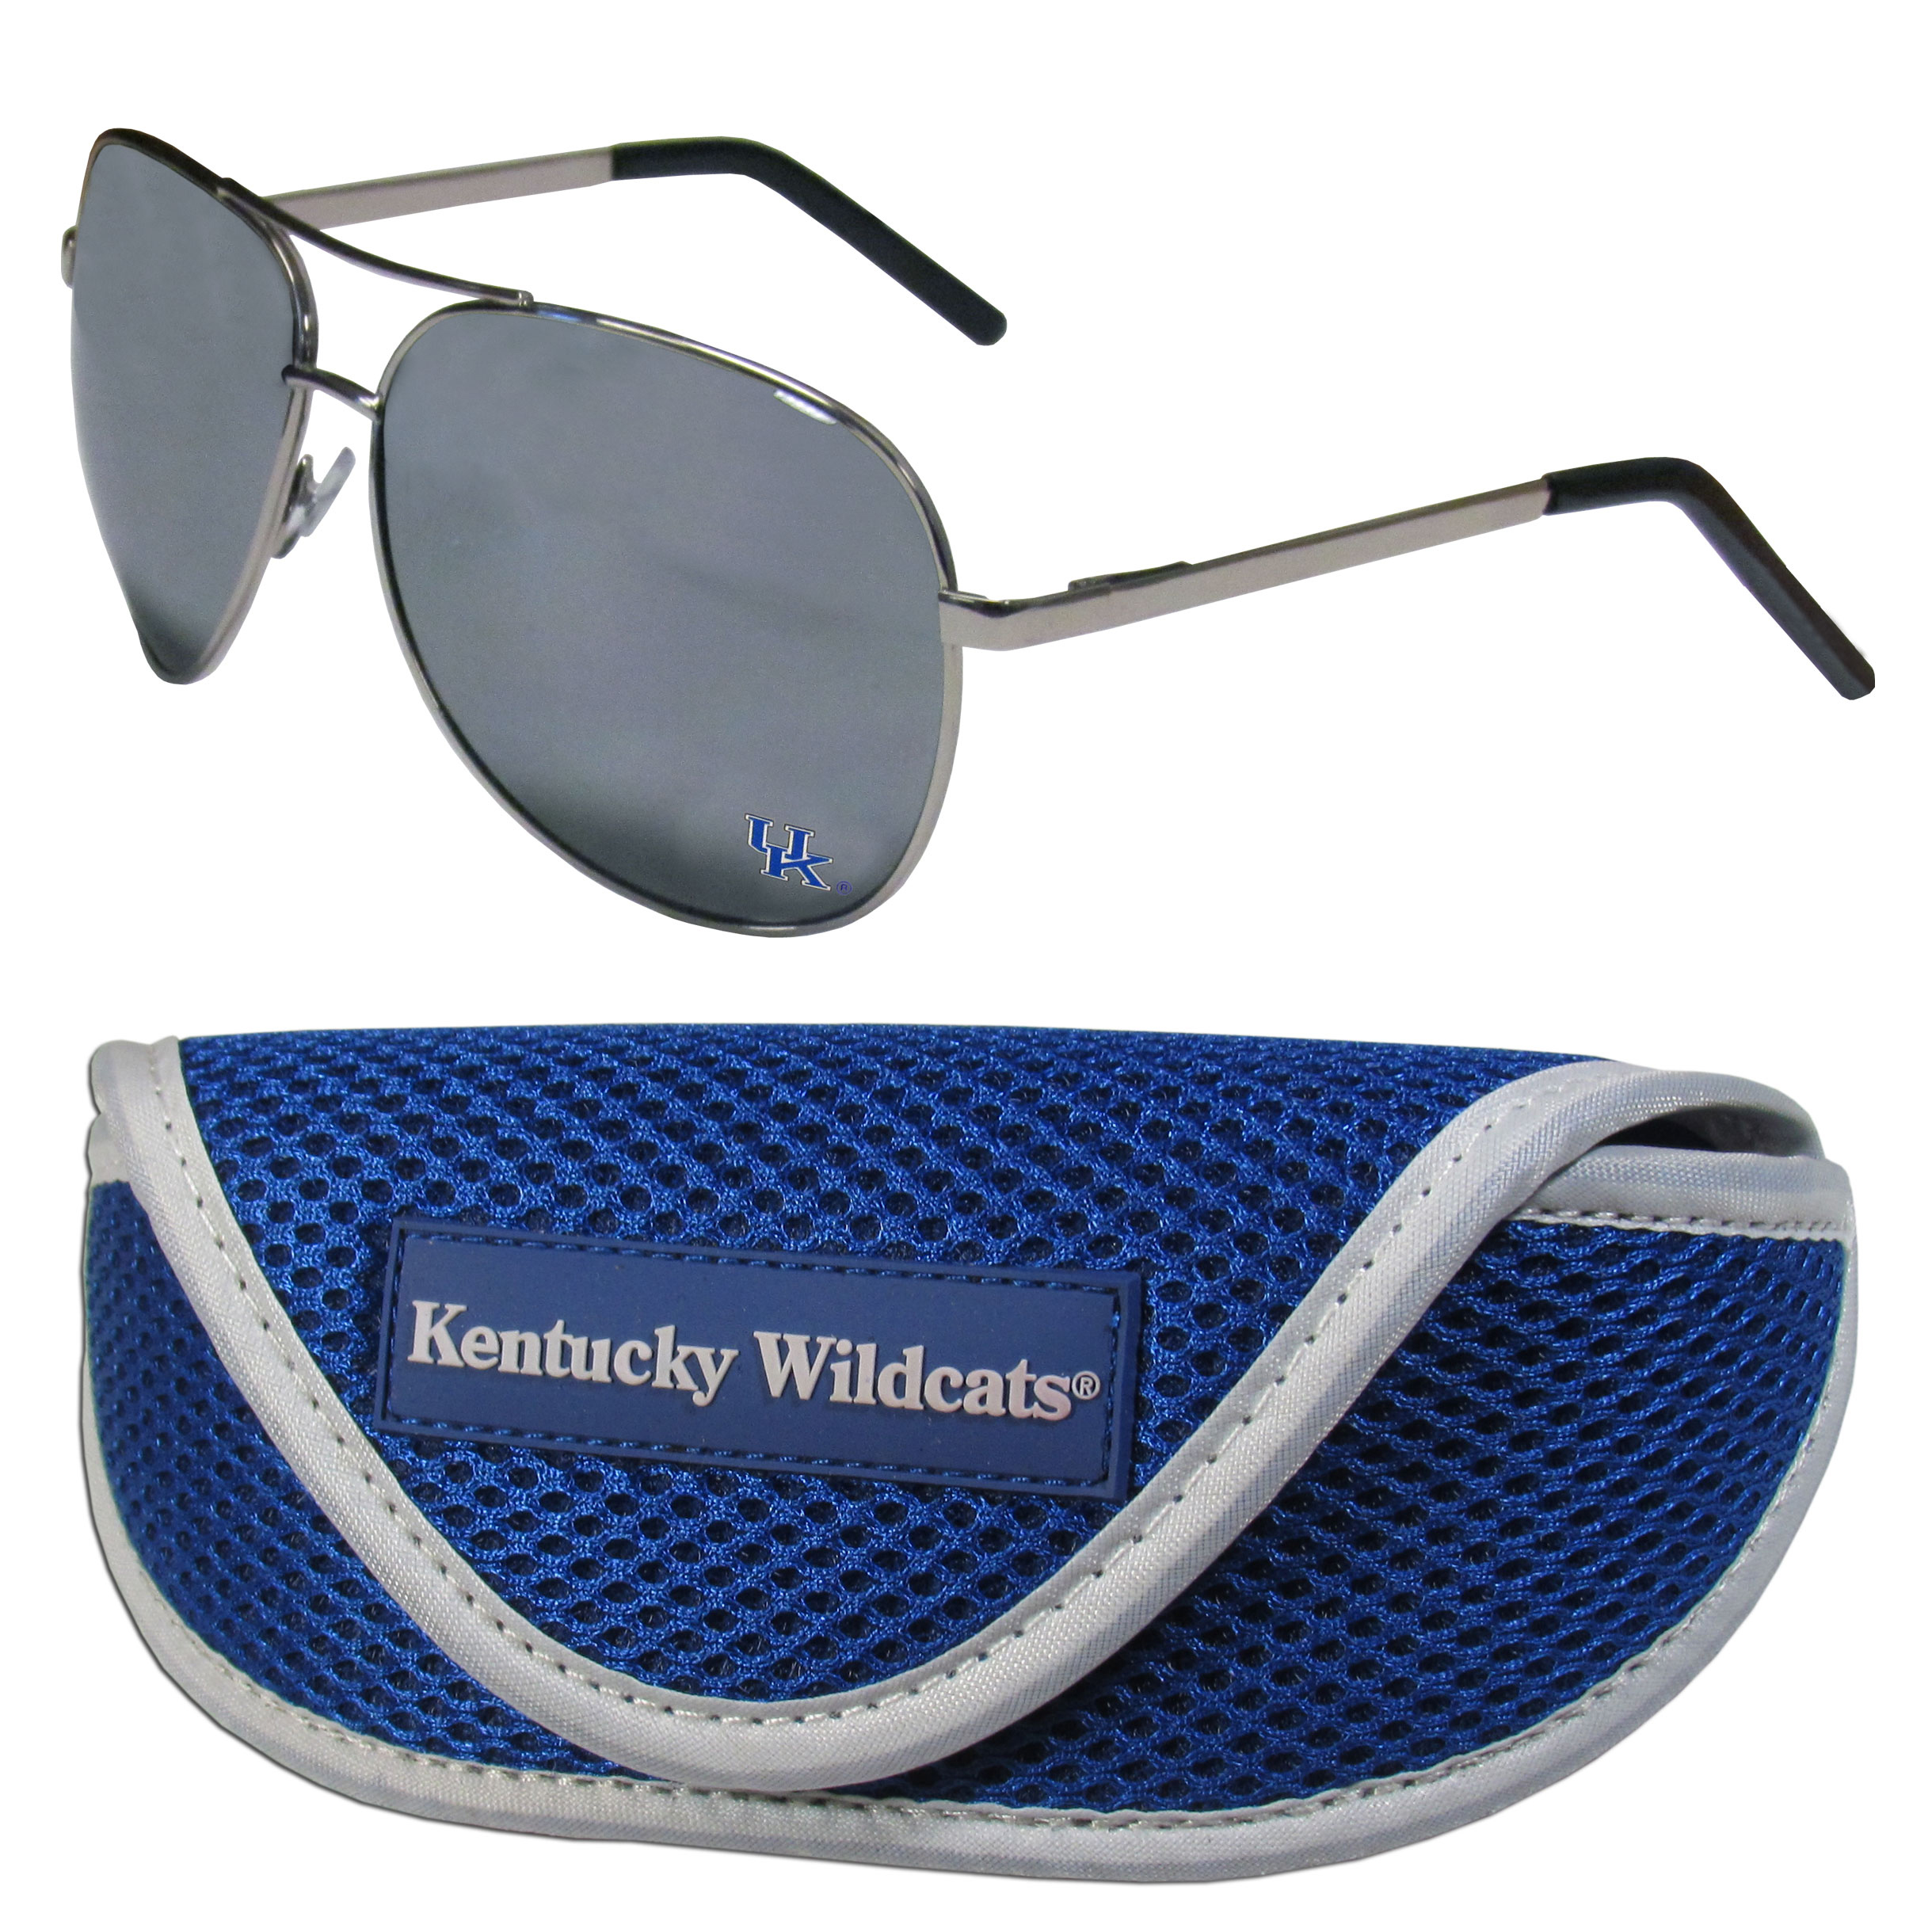 Kentucky Wildcats Aviator Sunglasses and Sports Case - Aviator sunglasses are truly an iconic retro fashion statement that never goes out-of-style. Our Kentucky Wildcats  aviator sunglasses pair this classic look with your love of the game. The iridium coated lenses reduce glare while driving, boating, golfing and their 100% UVA/UVB rating provides you with the maximum UV protection for all your outdoor activities. A millennial favorite, these affordable designer frames are the perfect eyewear accessory for a sports fan that is looking for high-quality at an affordable price. The durable, flex hinged frames are tough enough for hiking and camping or if you prefer sun bathing by the pool or on the beach these shades will really stand the test of time. The sunglasses come with a sporty case which has a large team logo on the lid that will make even the most die-hard fan proud!